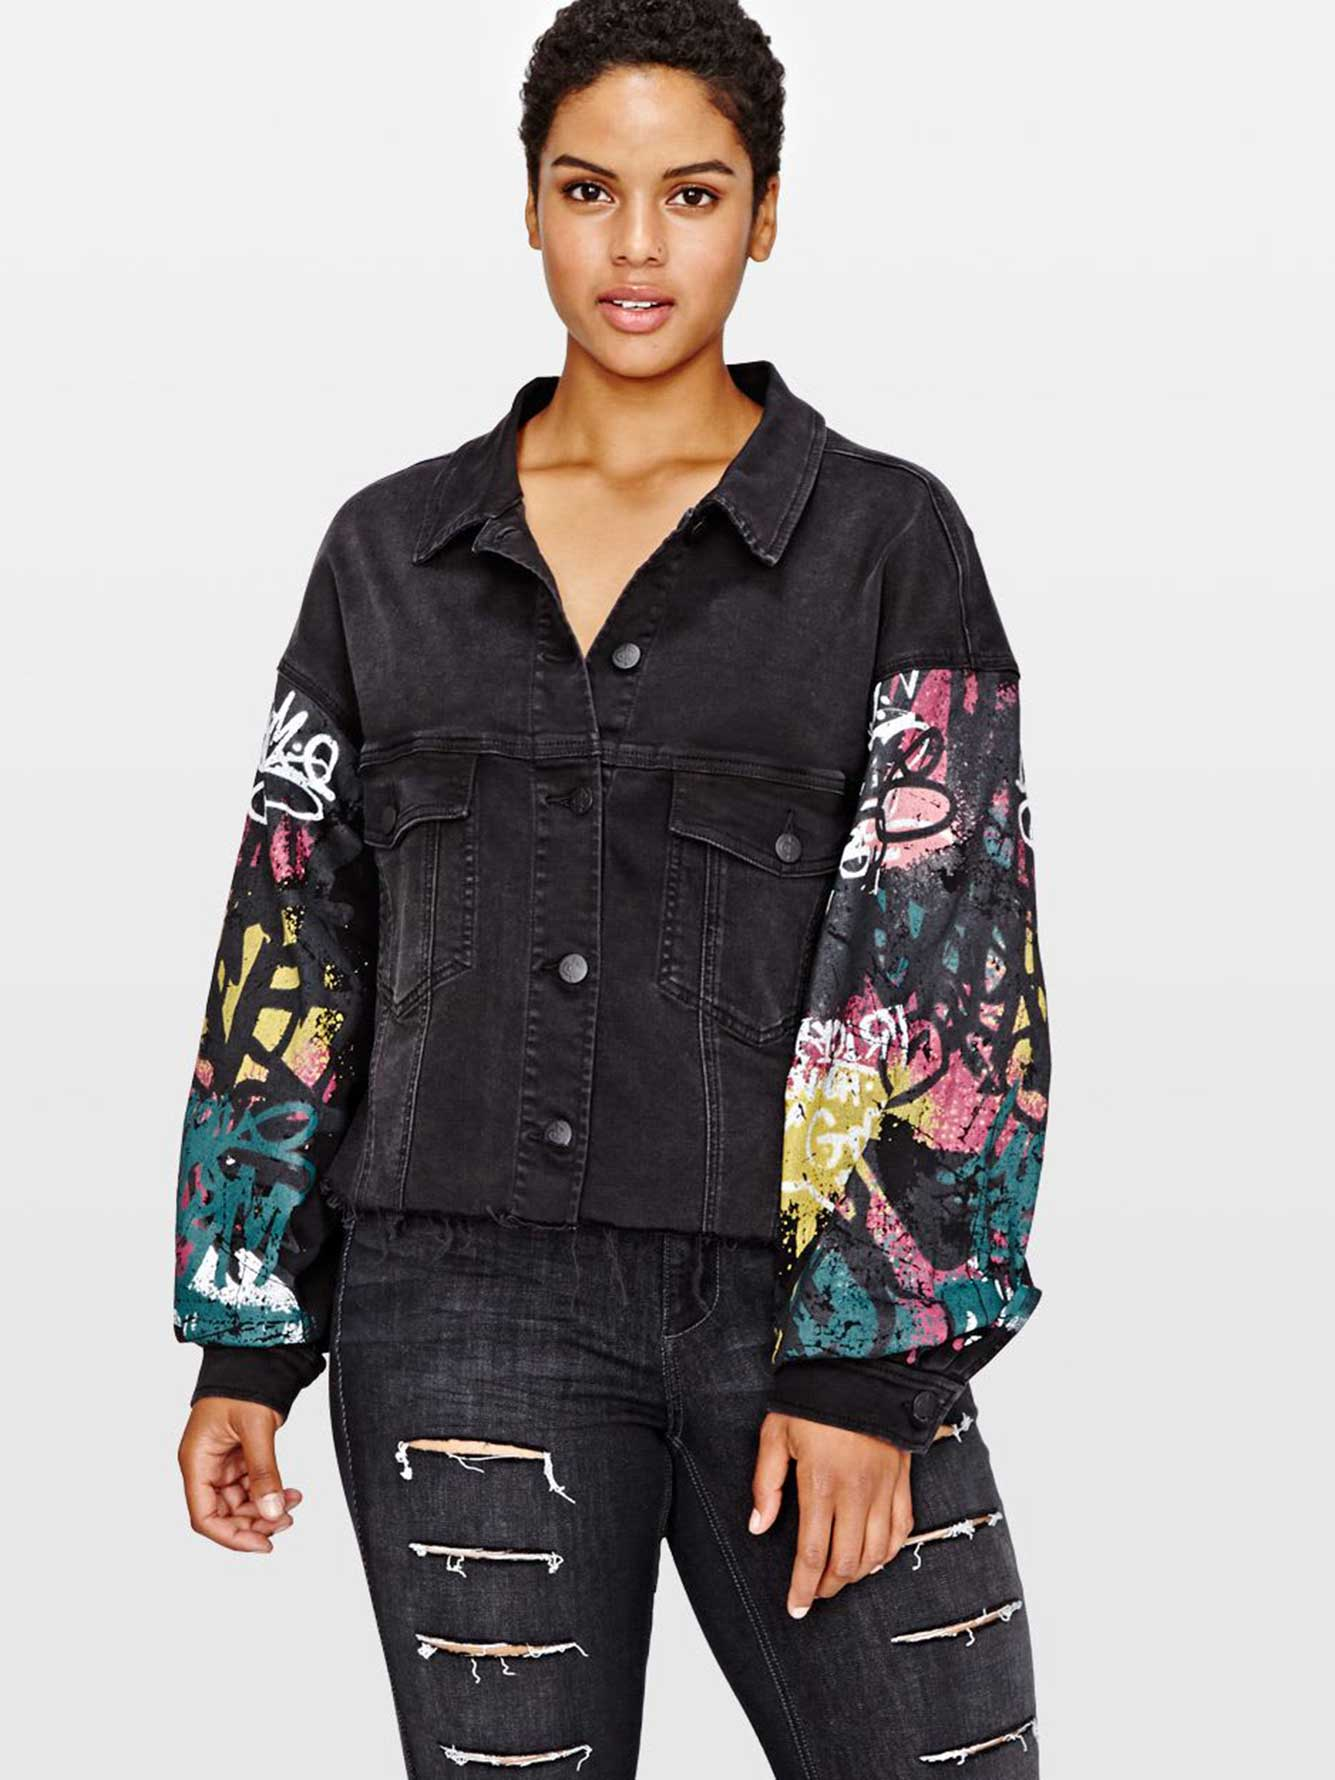 L&L Cropped Denim Jacket with Graffiti Print | Addition Elle